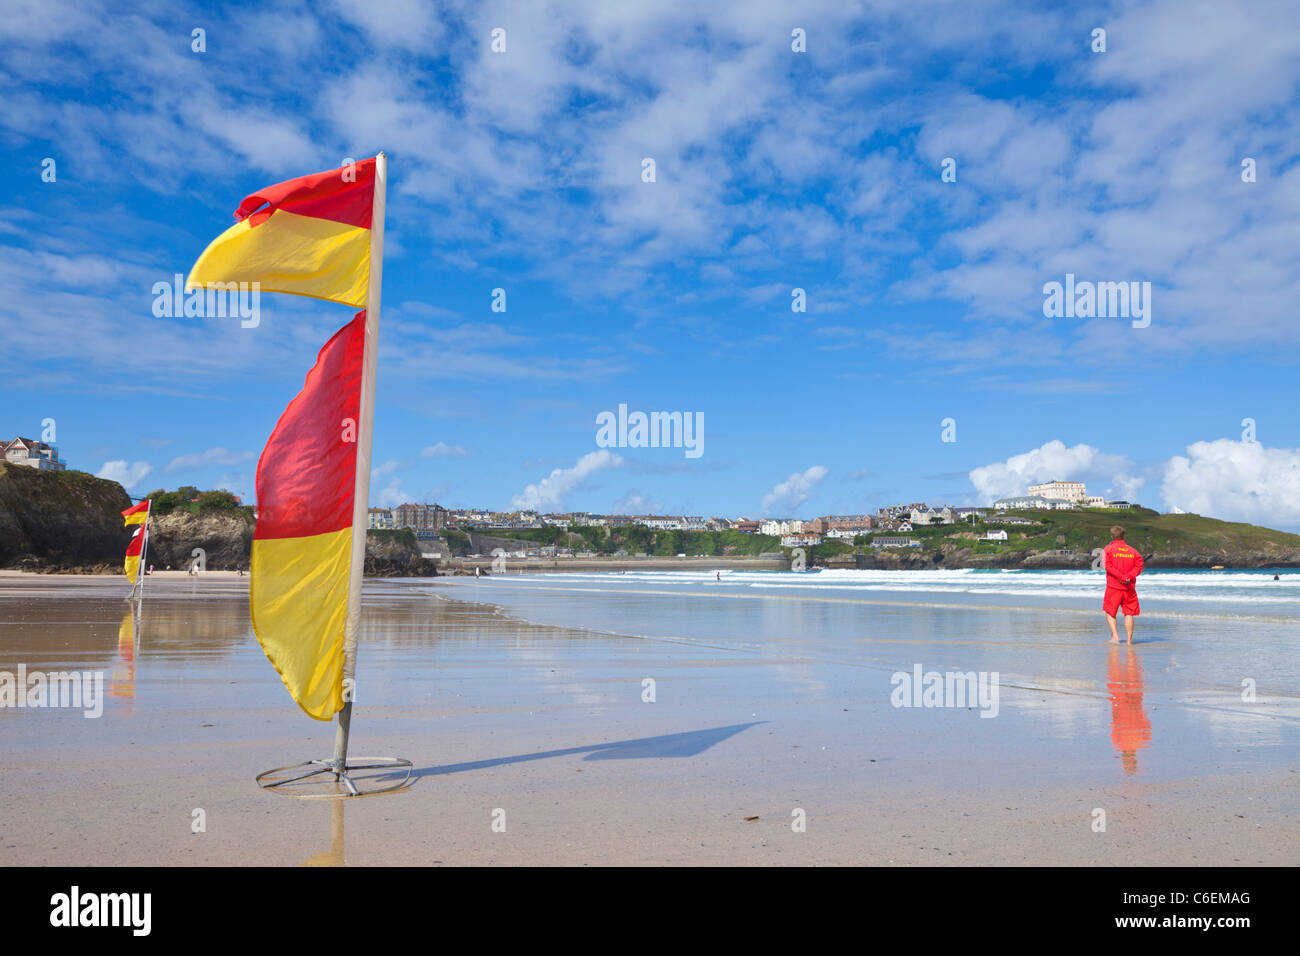 Lifeguard on duty warning flags yellow and red on newquay beaches Cornwall England UK GB EU Europe - Stock Image